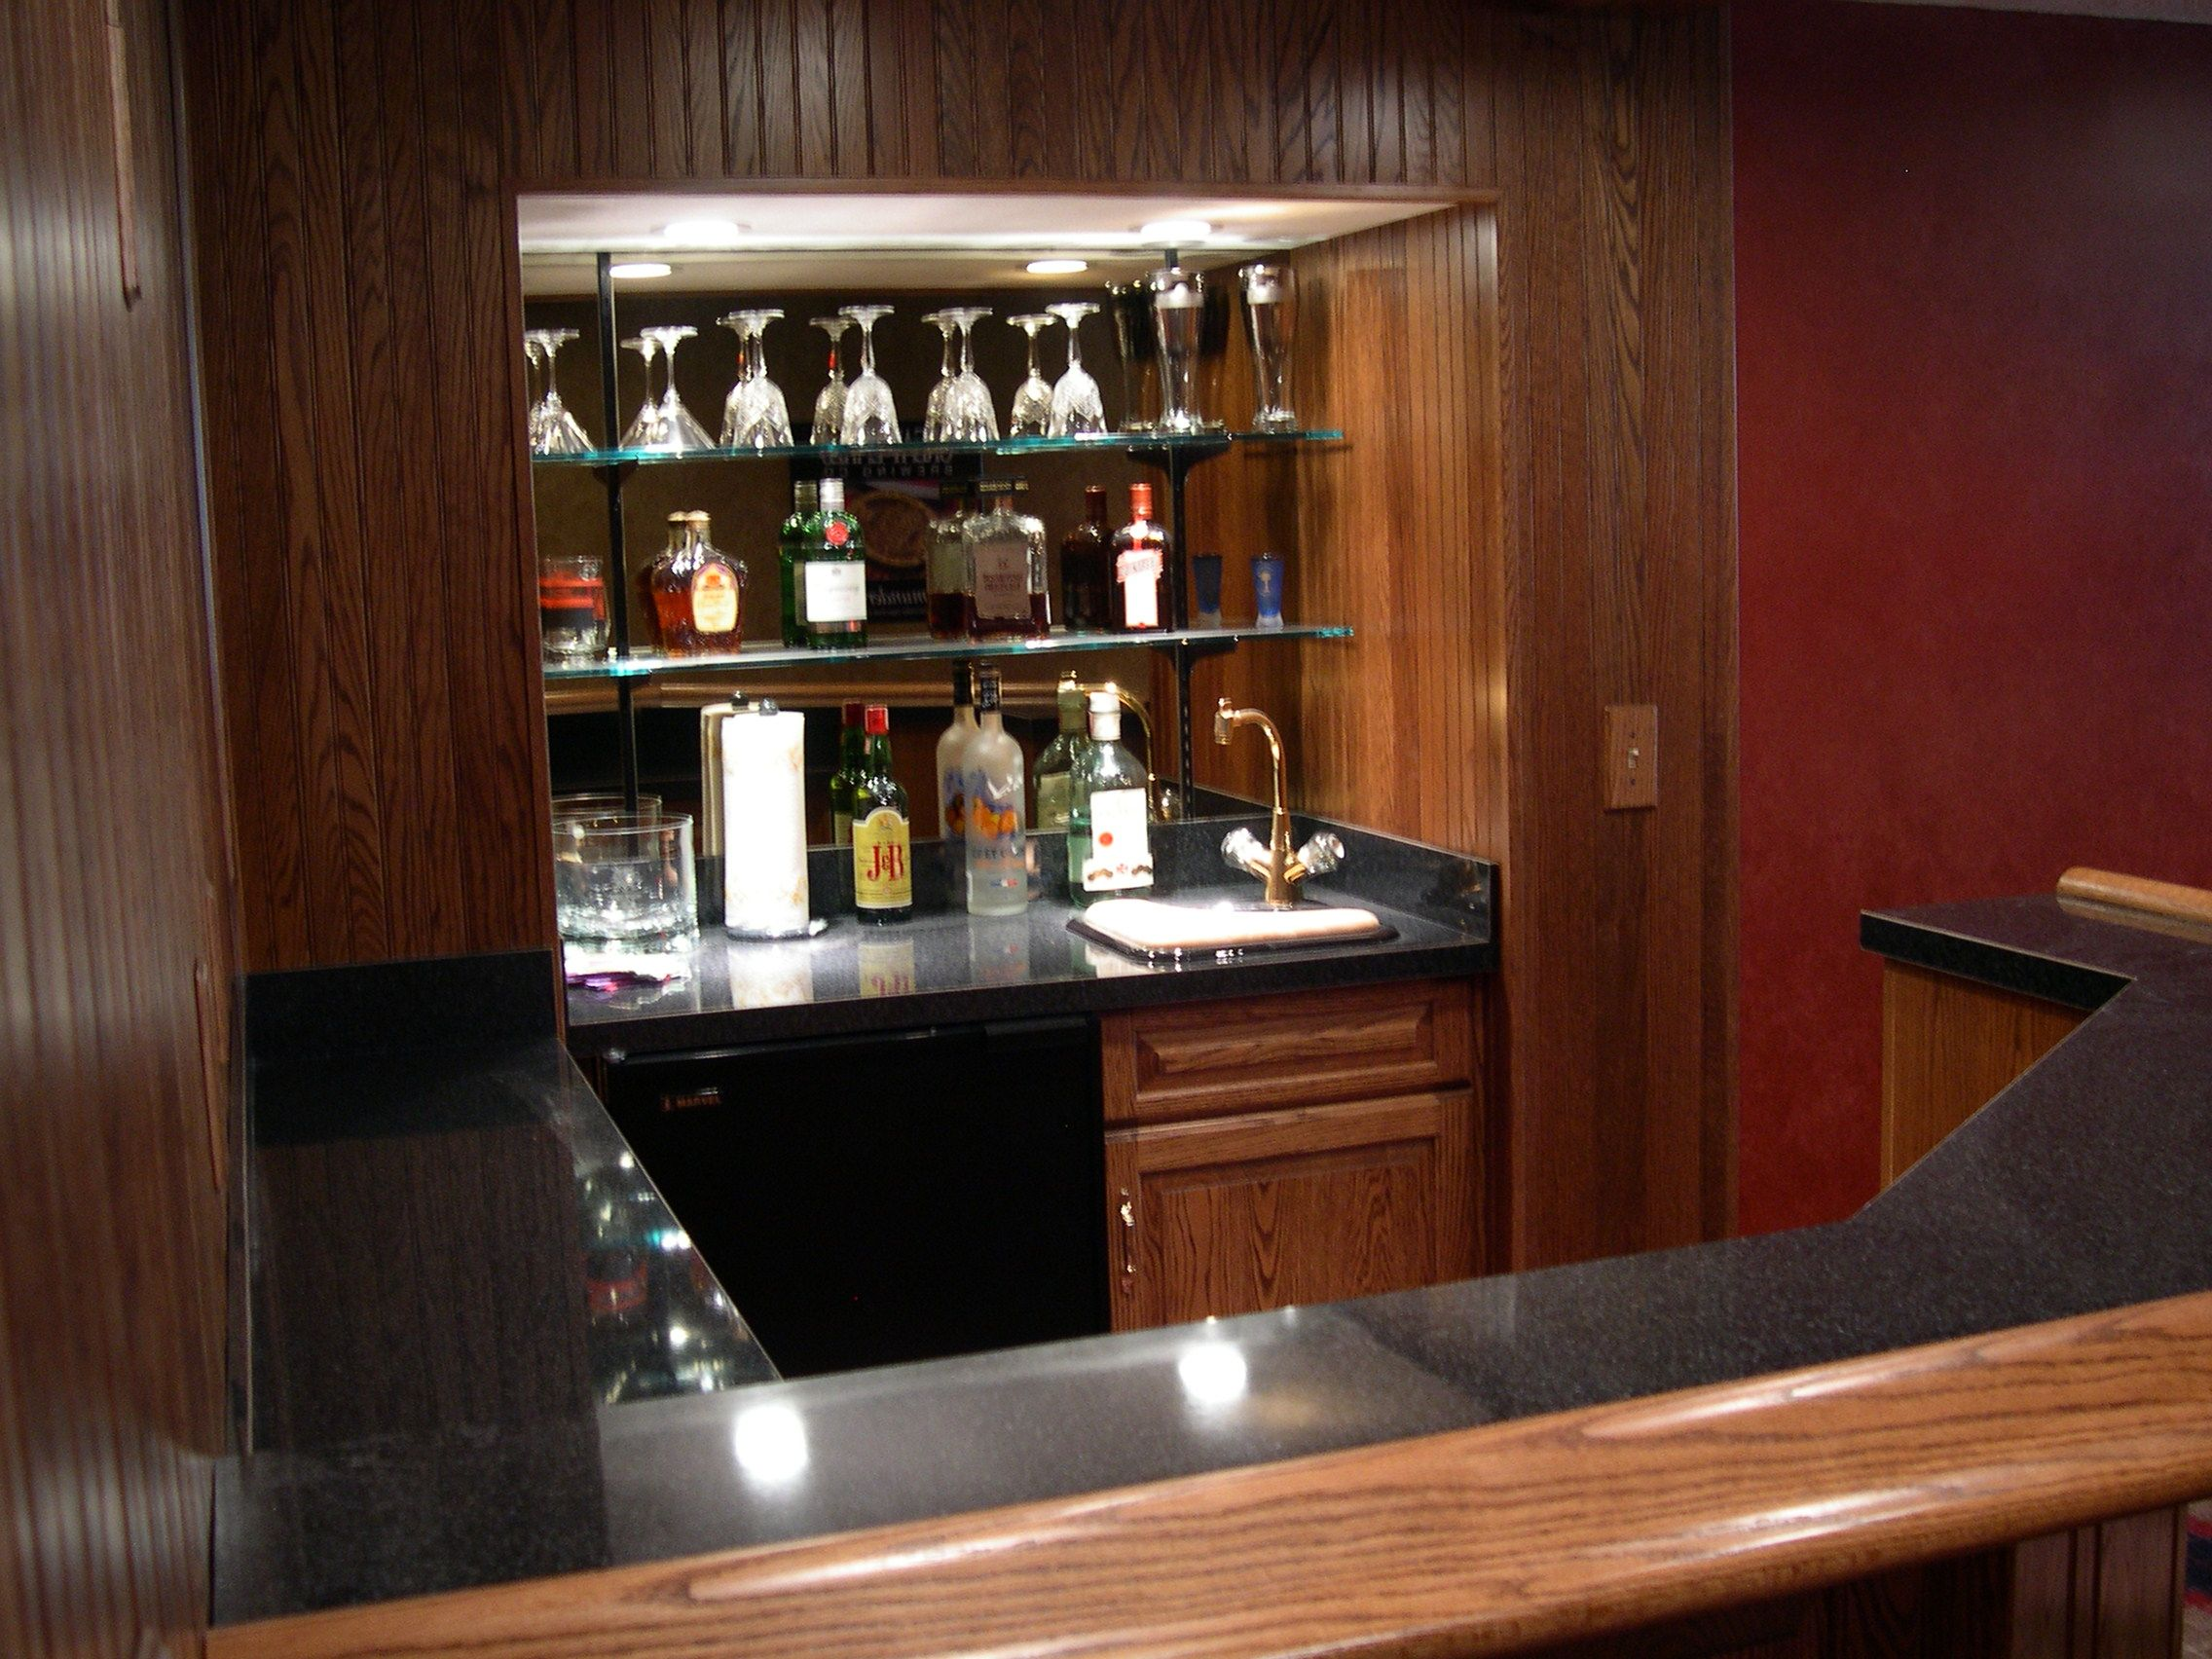 Coolest Diy Home Bar Ideas Small space decorating